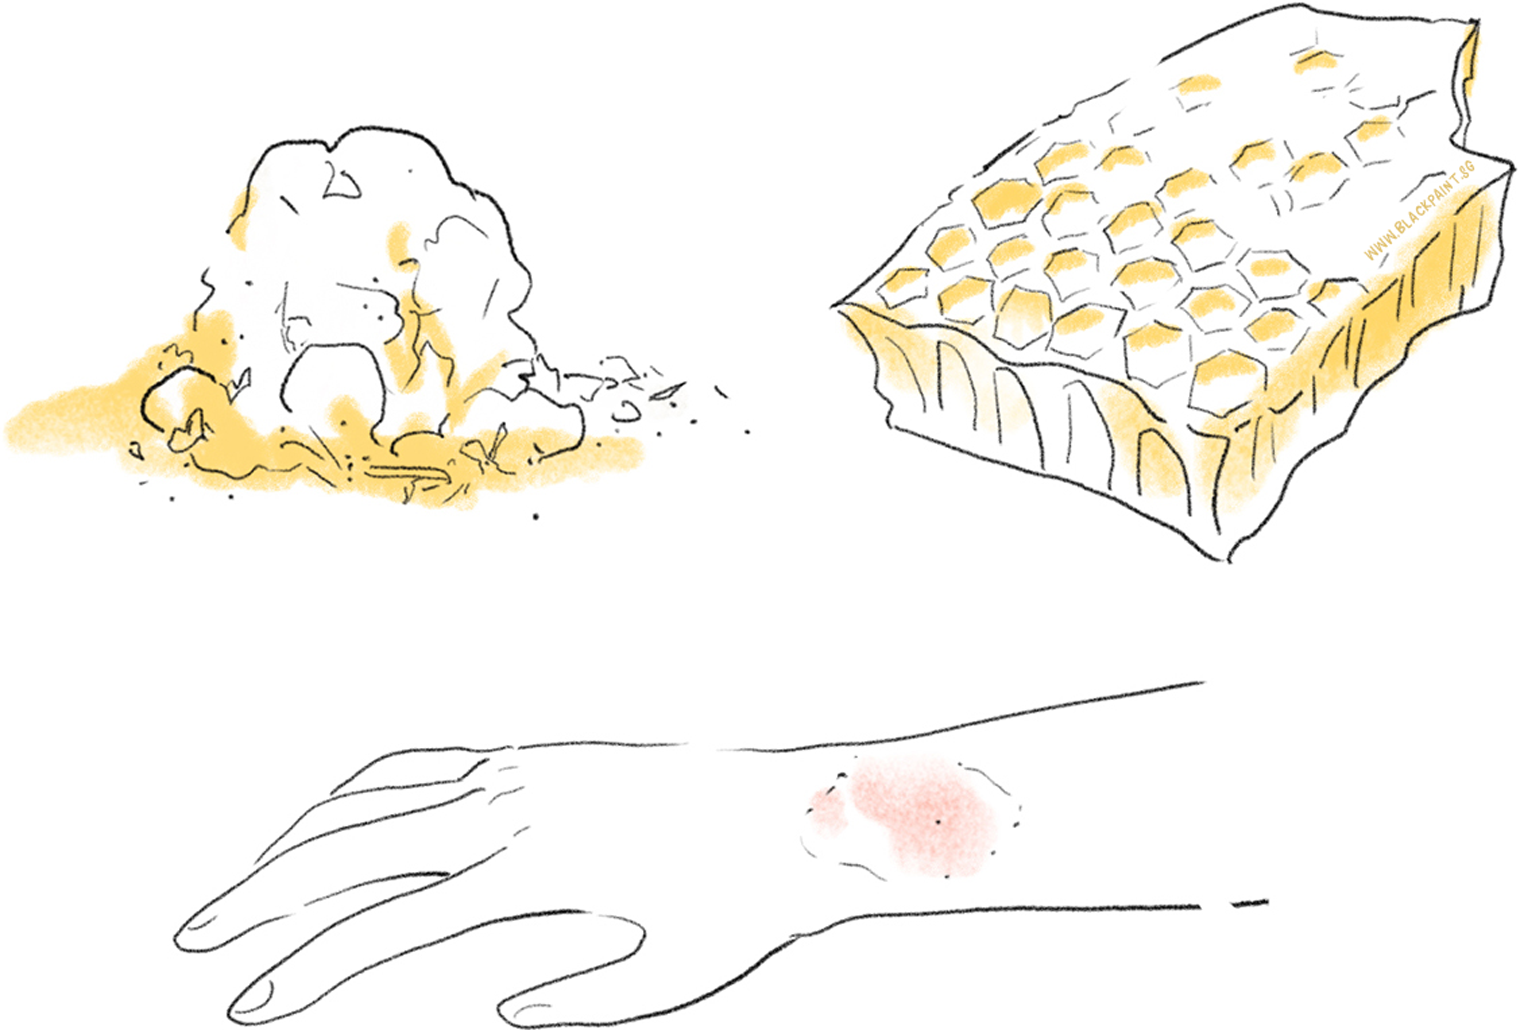 illustration of bee products having antibacterial actions for skin healing